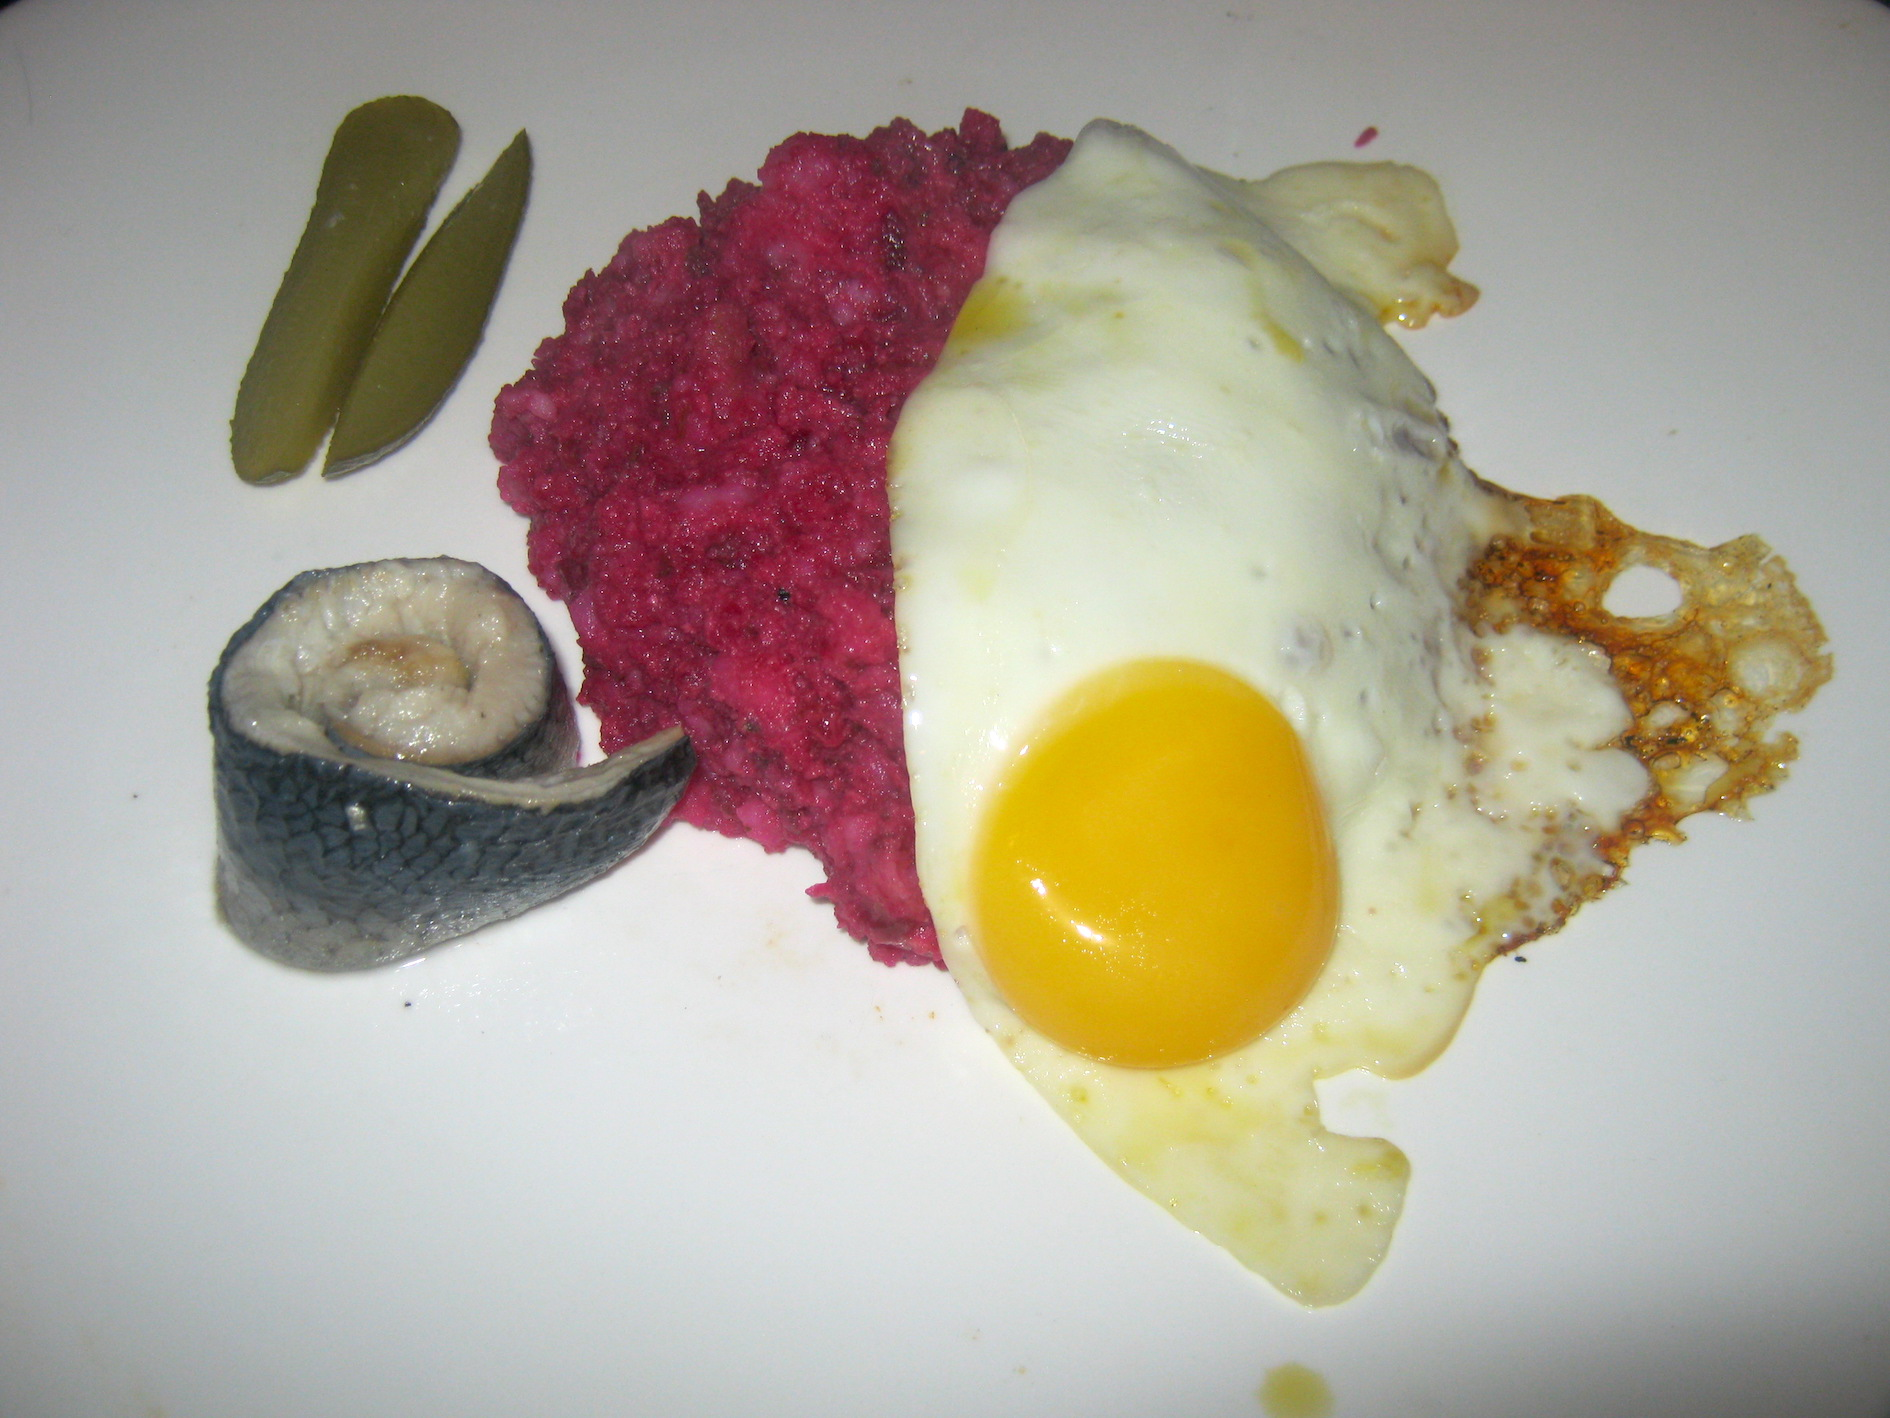 Hamburger Labskaus is a traditional North German dish with gherkins, beetroot, potatoes, eggs and pickled herring